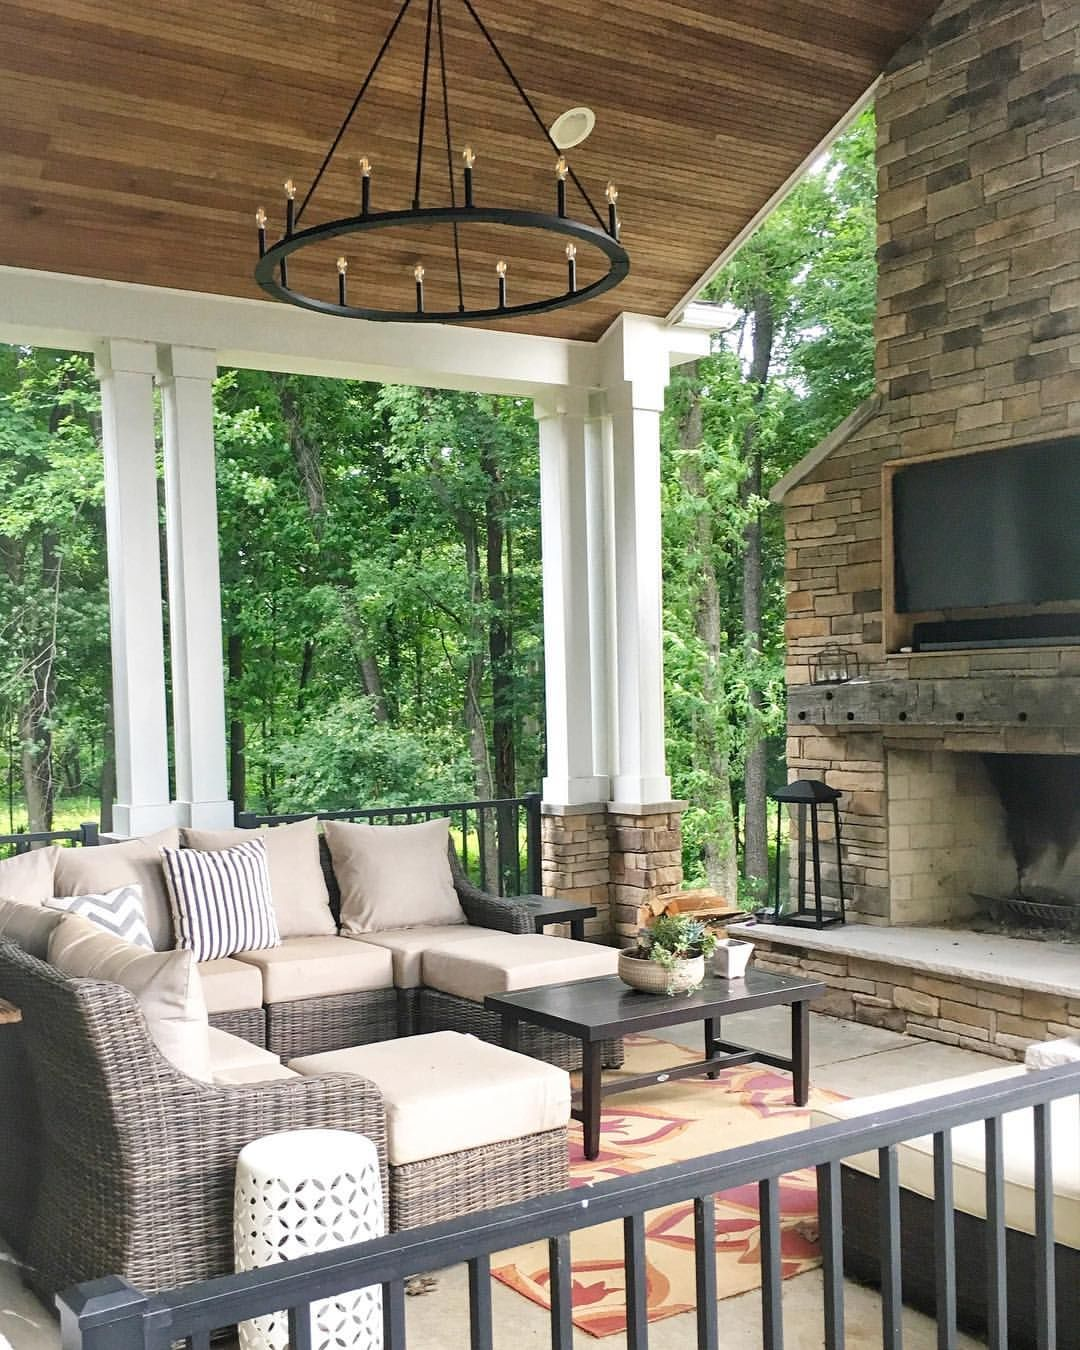 Modern Farmhouse Porch With Outdoor Stone Fireplace Sectional And Outdoor Chandelier Outdoordecor Out Outdoor Stone Fireplaces Outdoor Living Outdoor Decor